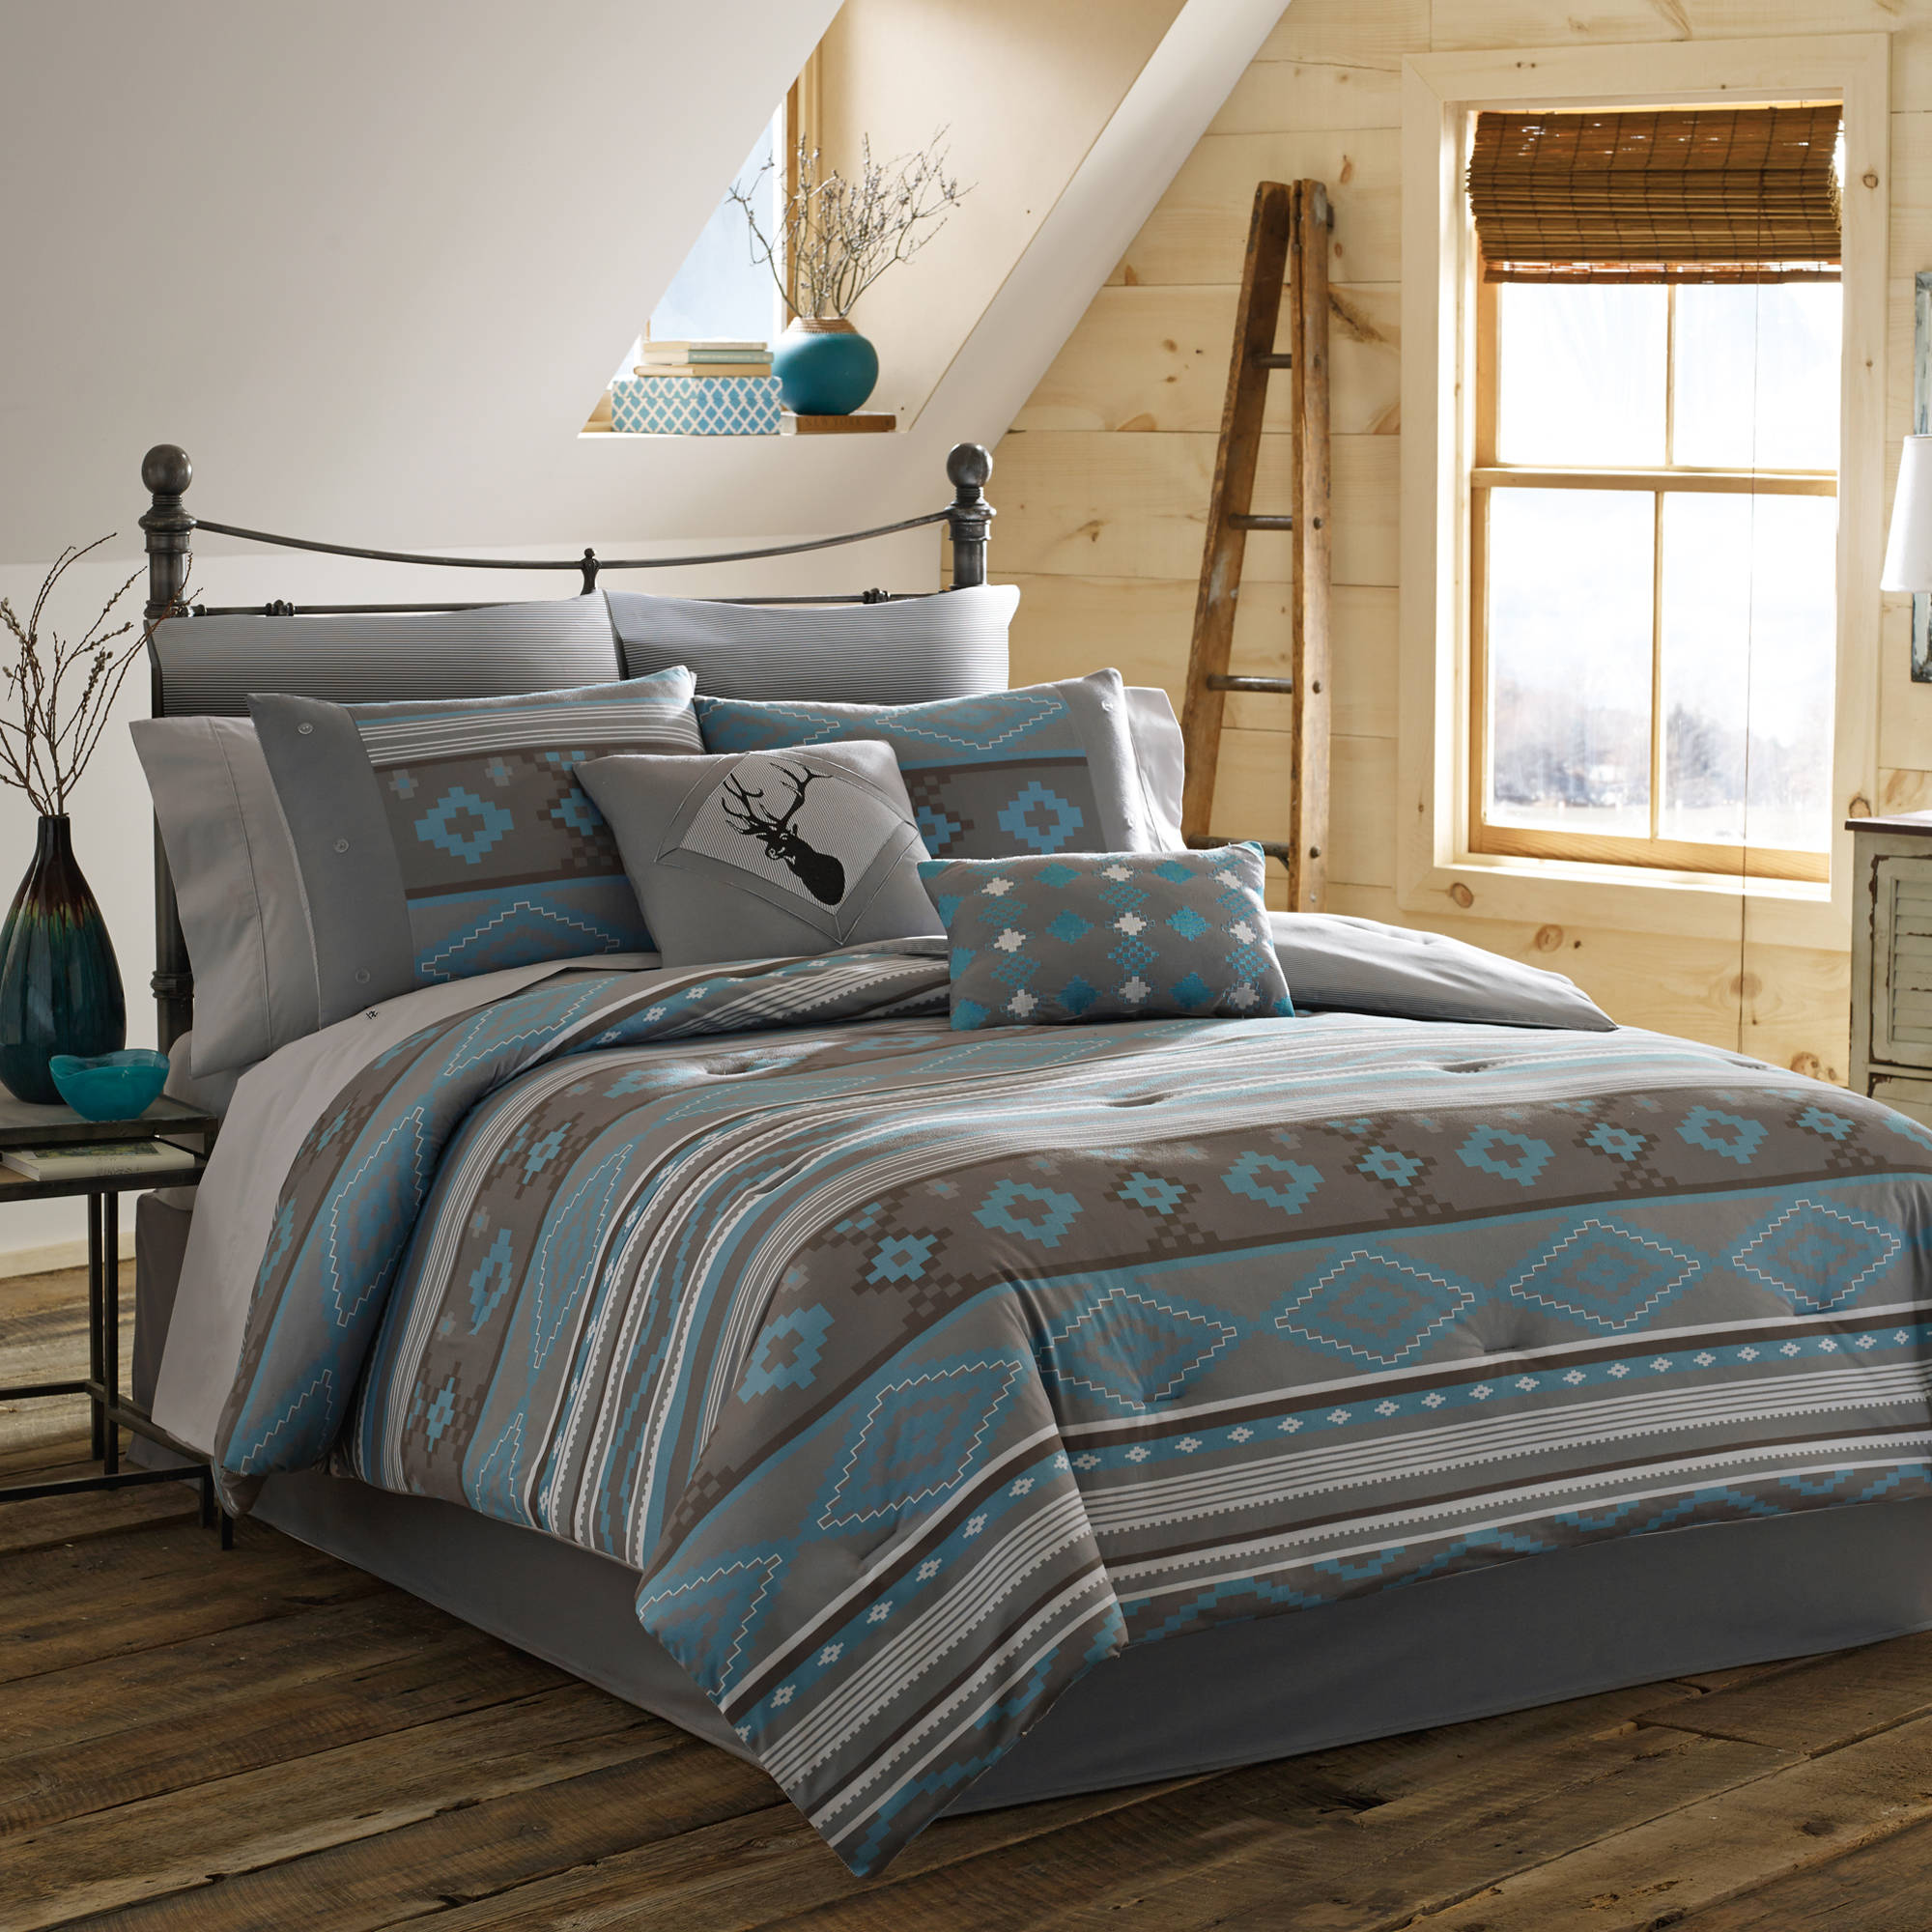 true timber southwest bedding comforter set, teal - walmart